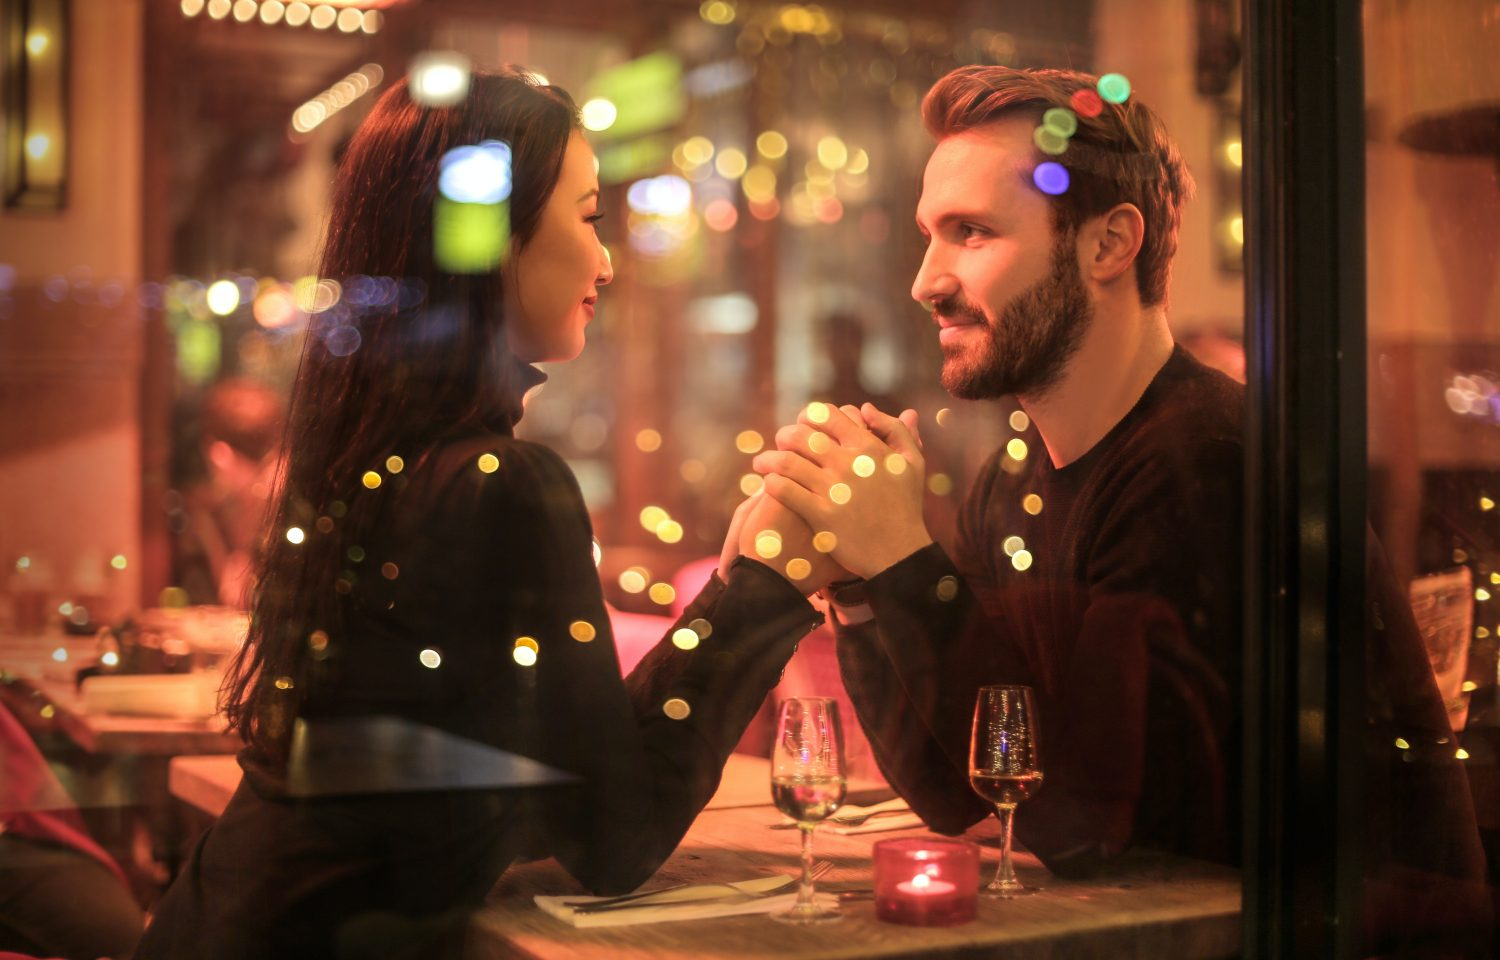 is it a date, or are you just hanging out? here are 10 ways to know where you stand